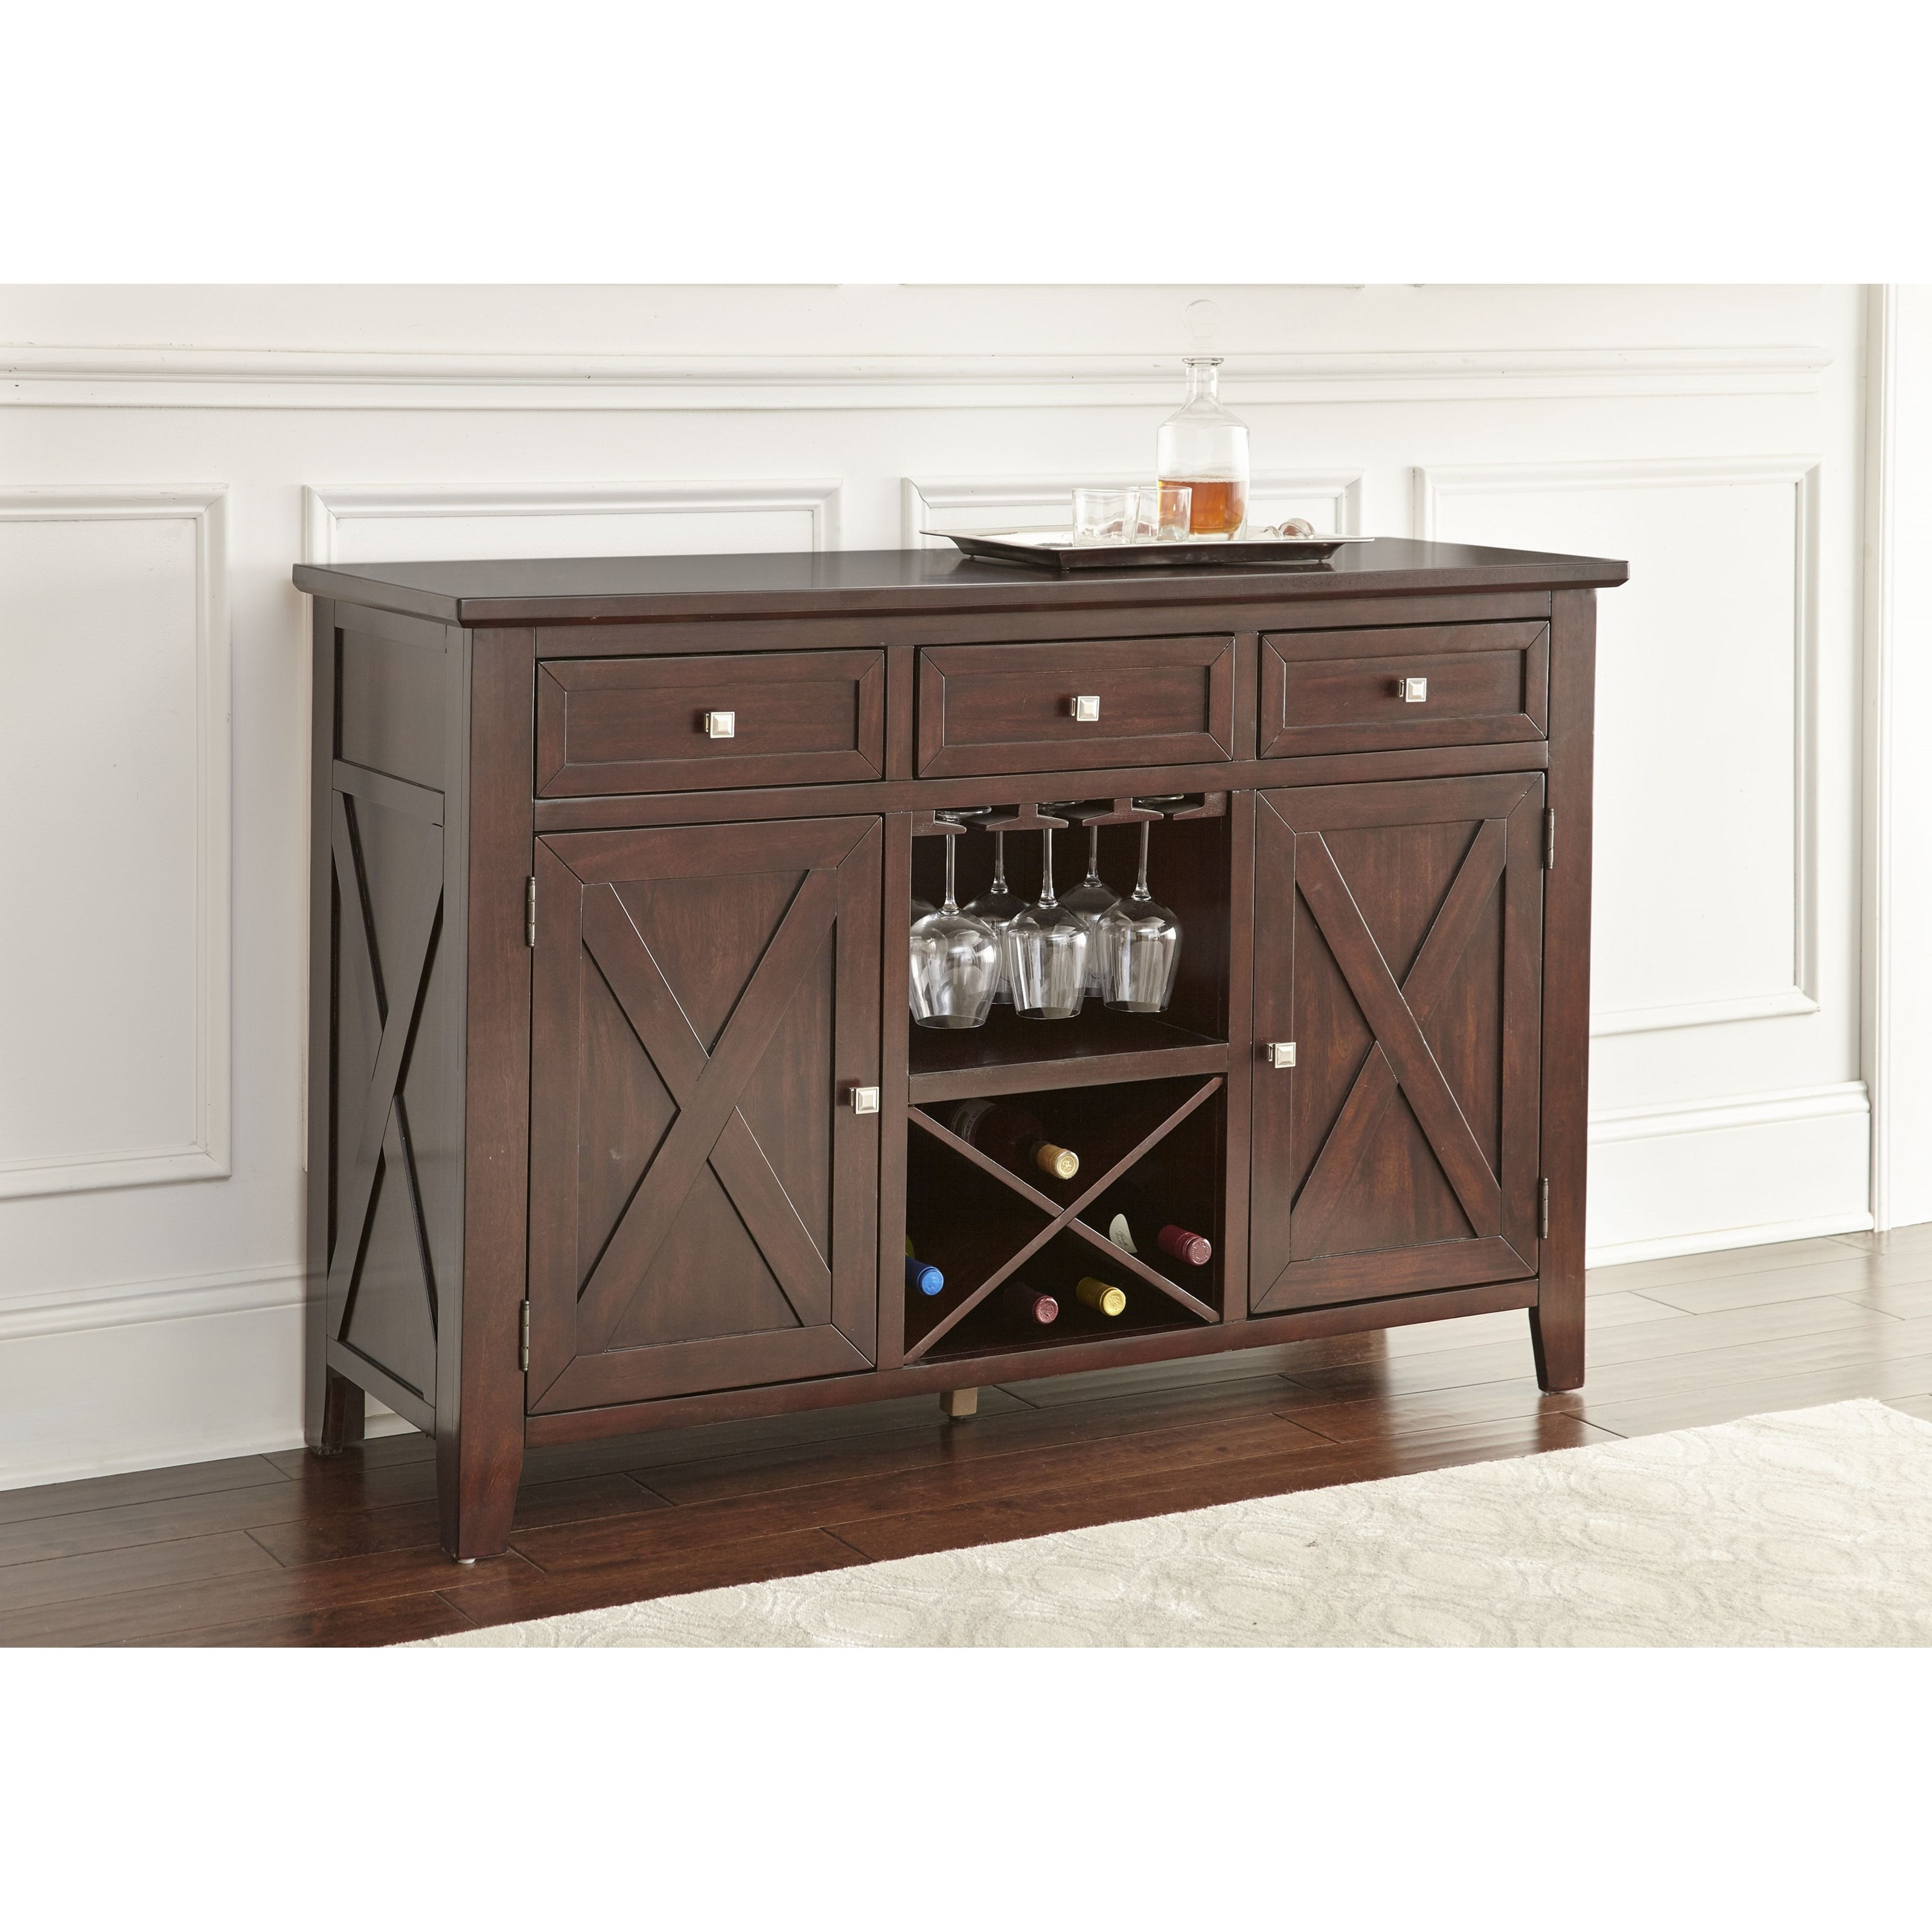 Adrian Server by Vendor 3985 at Becker Furniture